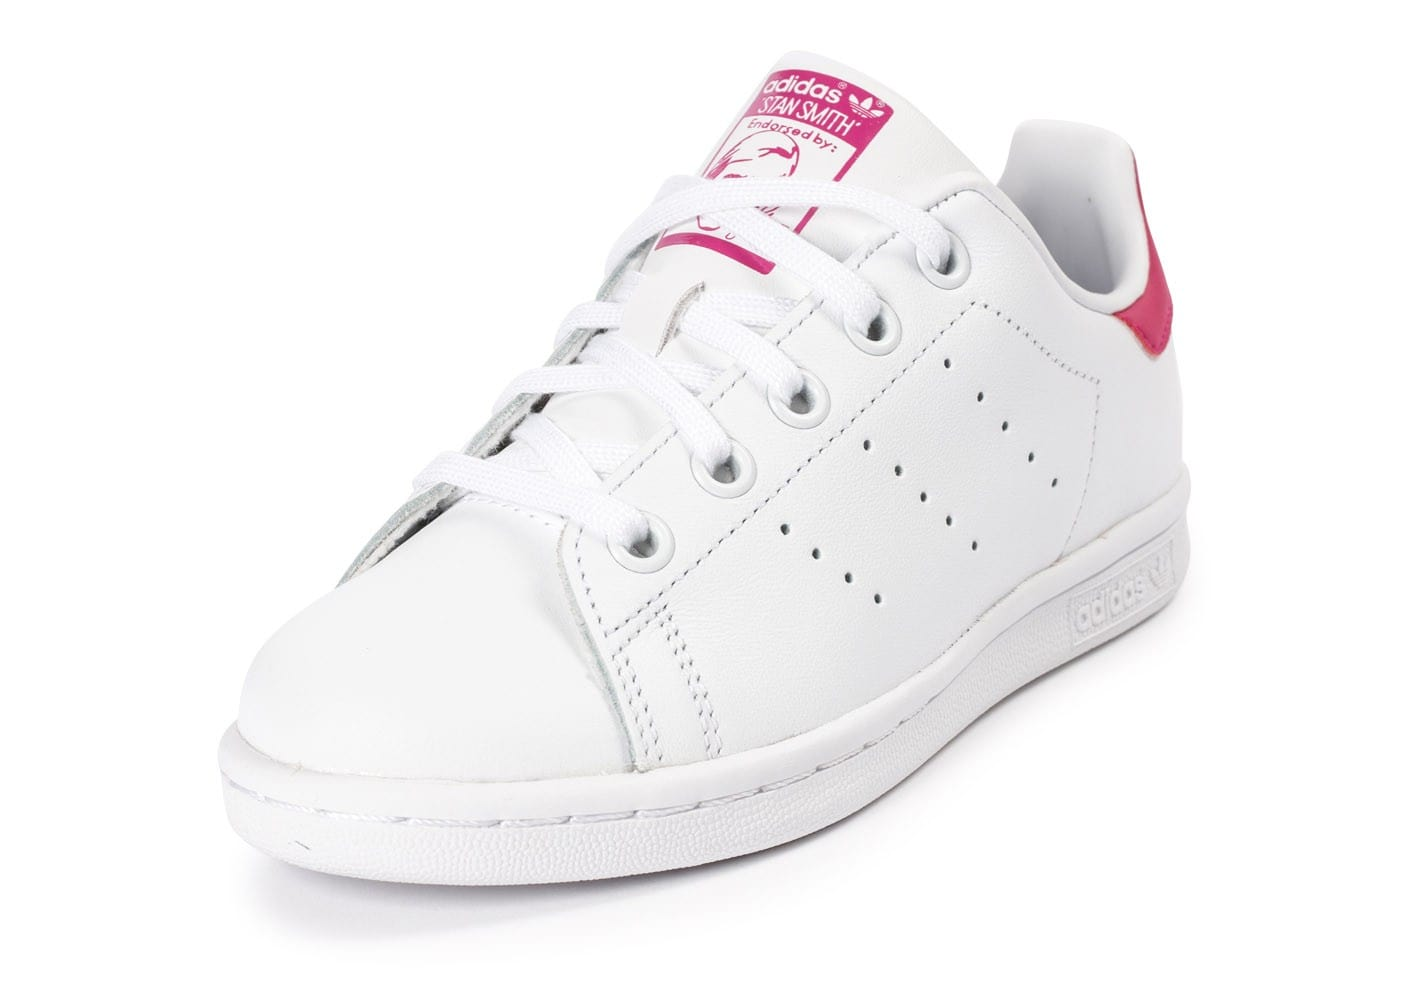 adidas dragon rose et blanche